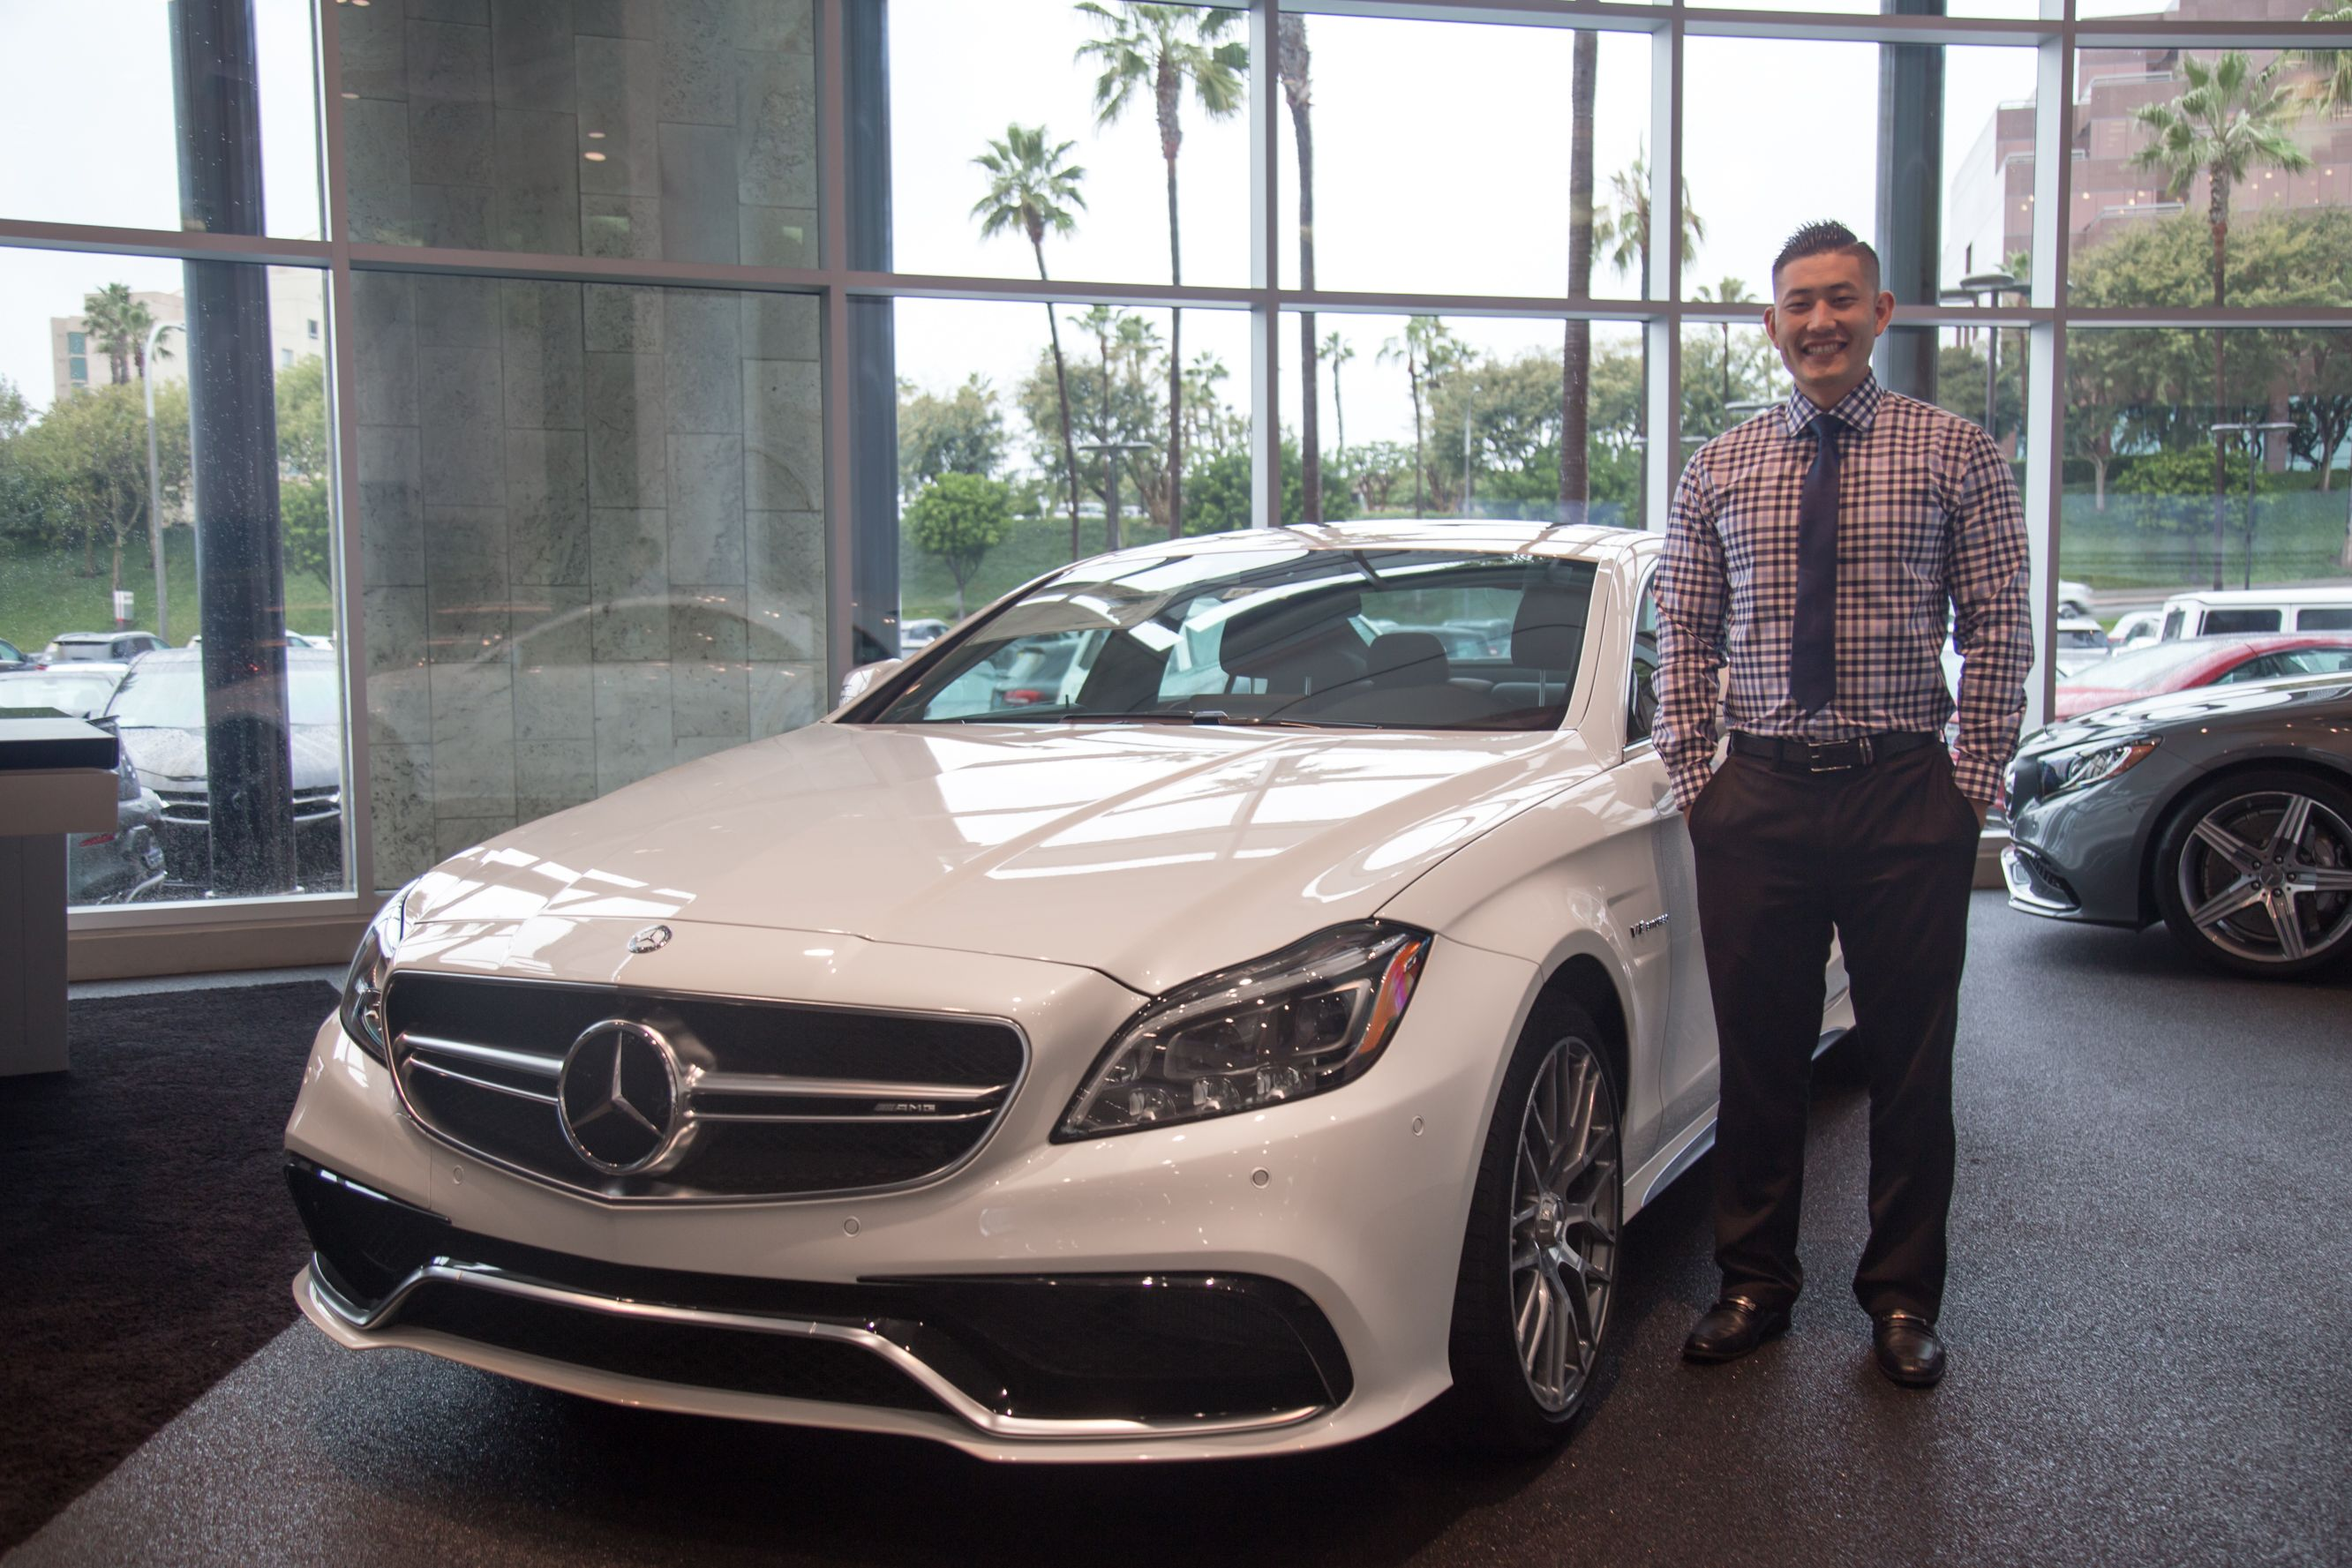 New Mercedes Benz Vehicles For Sale In Temecula New Mercedes Benz Lease Specials